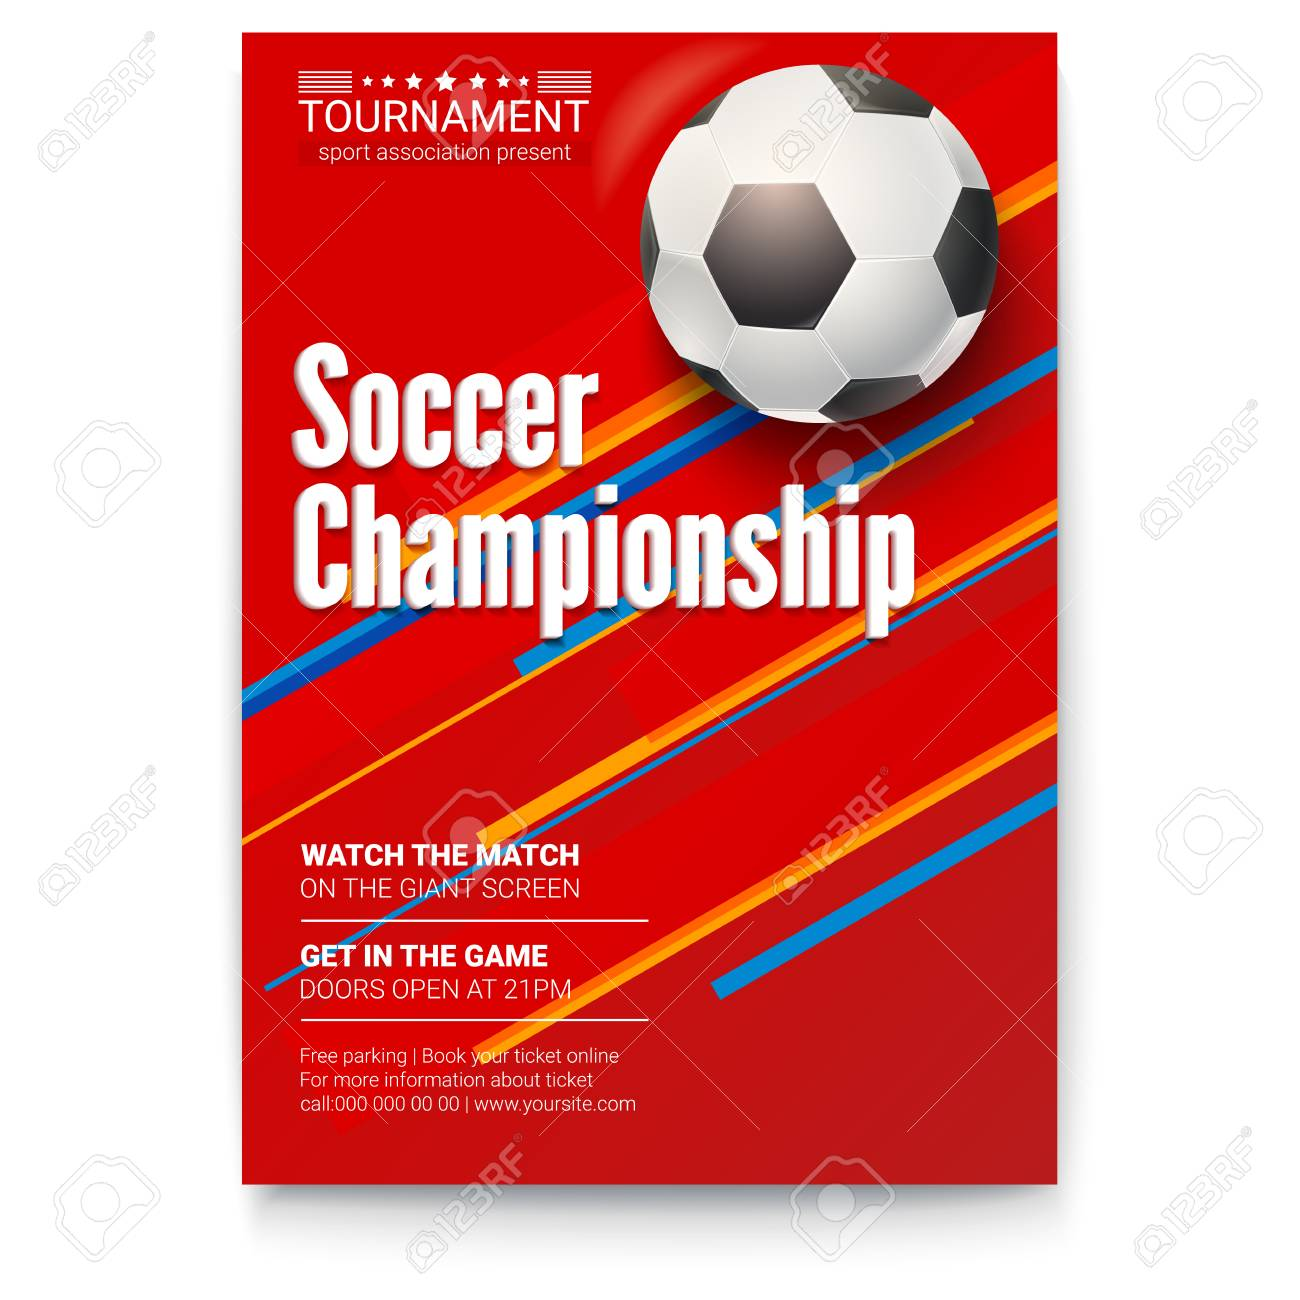 Soccer Ball On Graphics Background Poster Of Tournament Football Royalty Free Cliparts Vectors And Stock Illustration Image 102091433